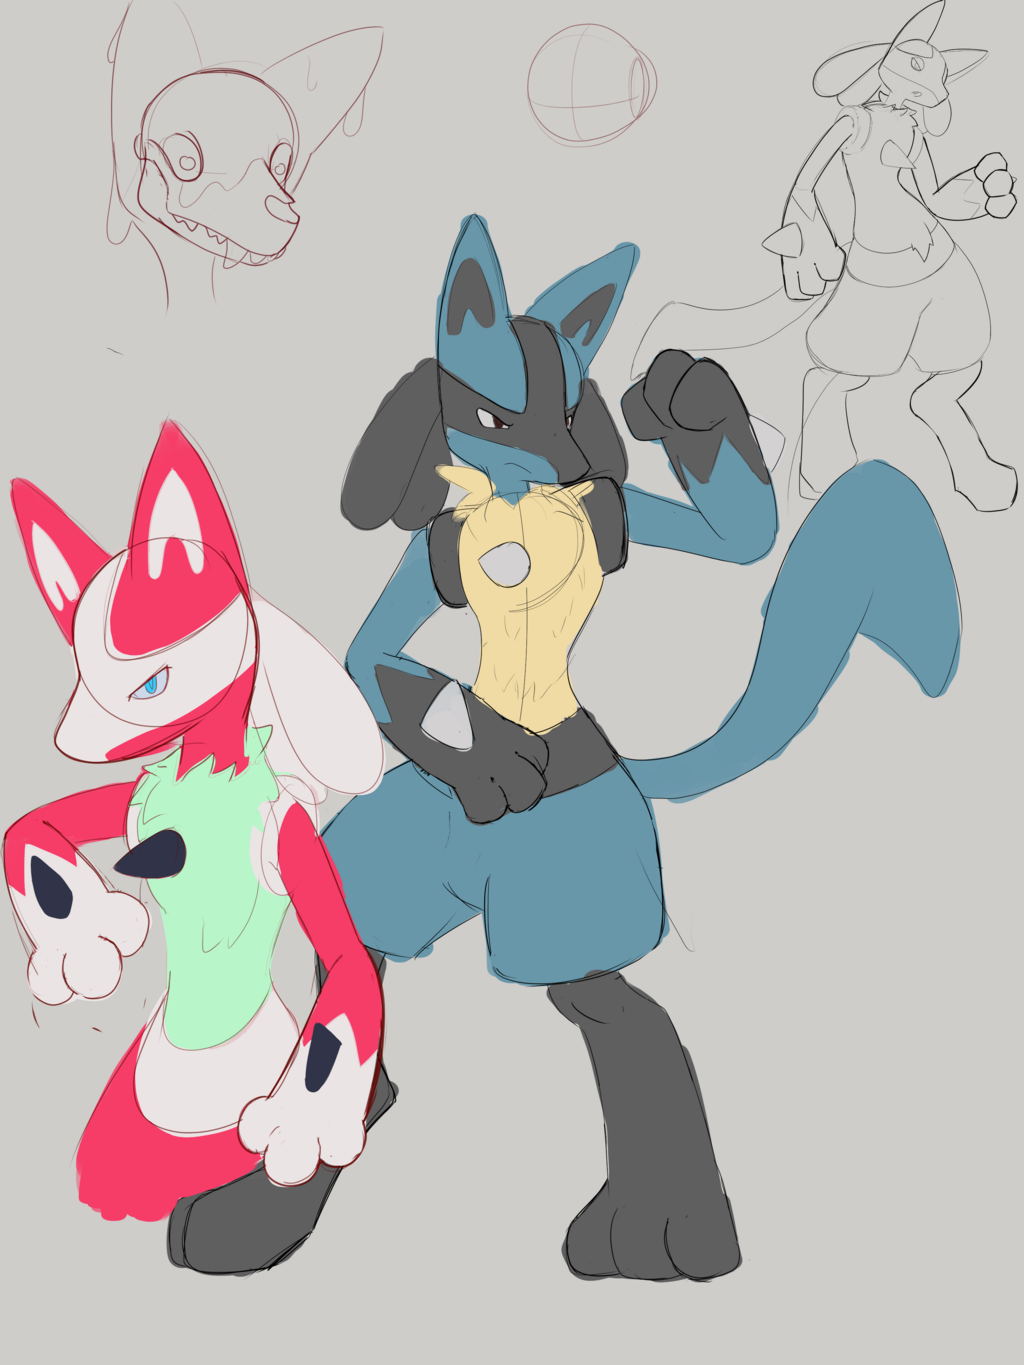 Most recent image: Lucario Sketches